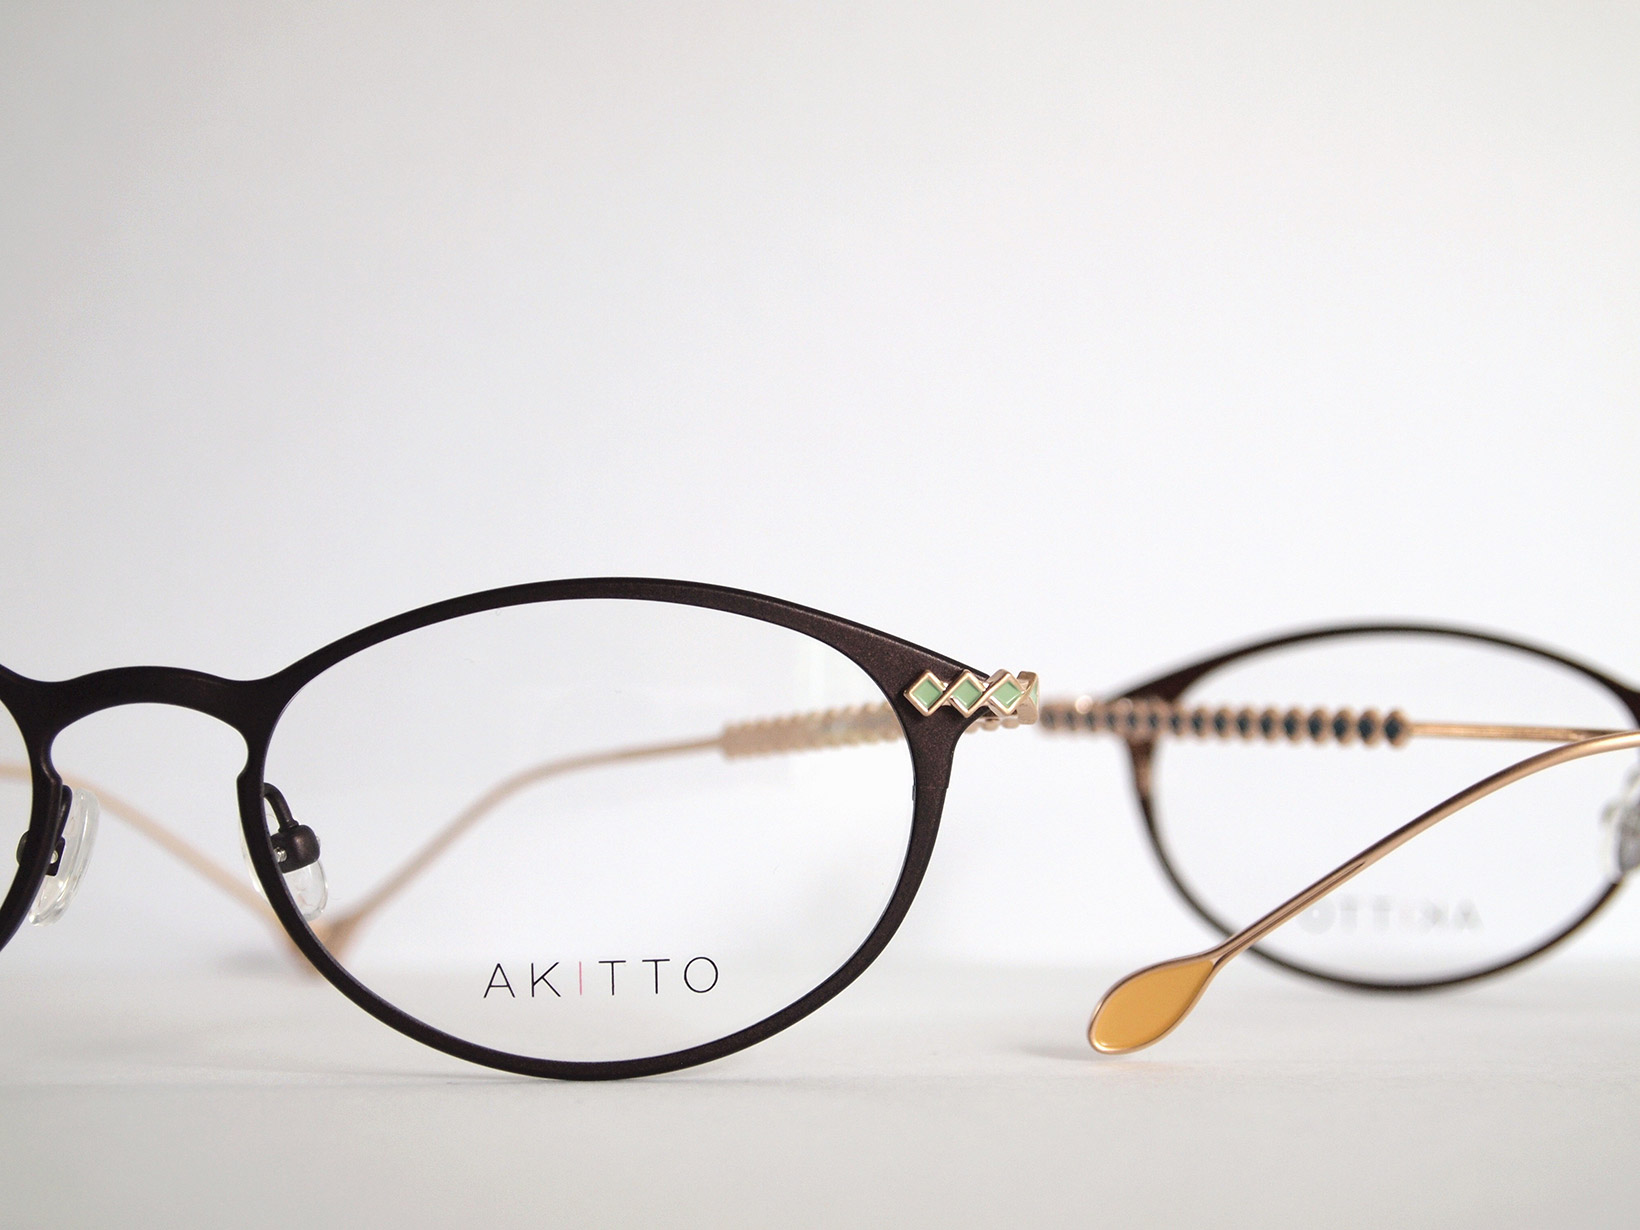 AKITTO 2020-3rd lin1 size:51□17 material:titanium price:¥44,500(+tax)